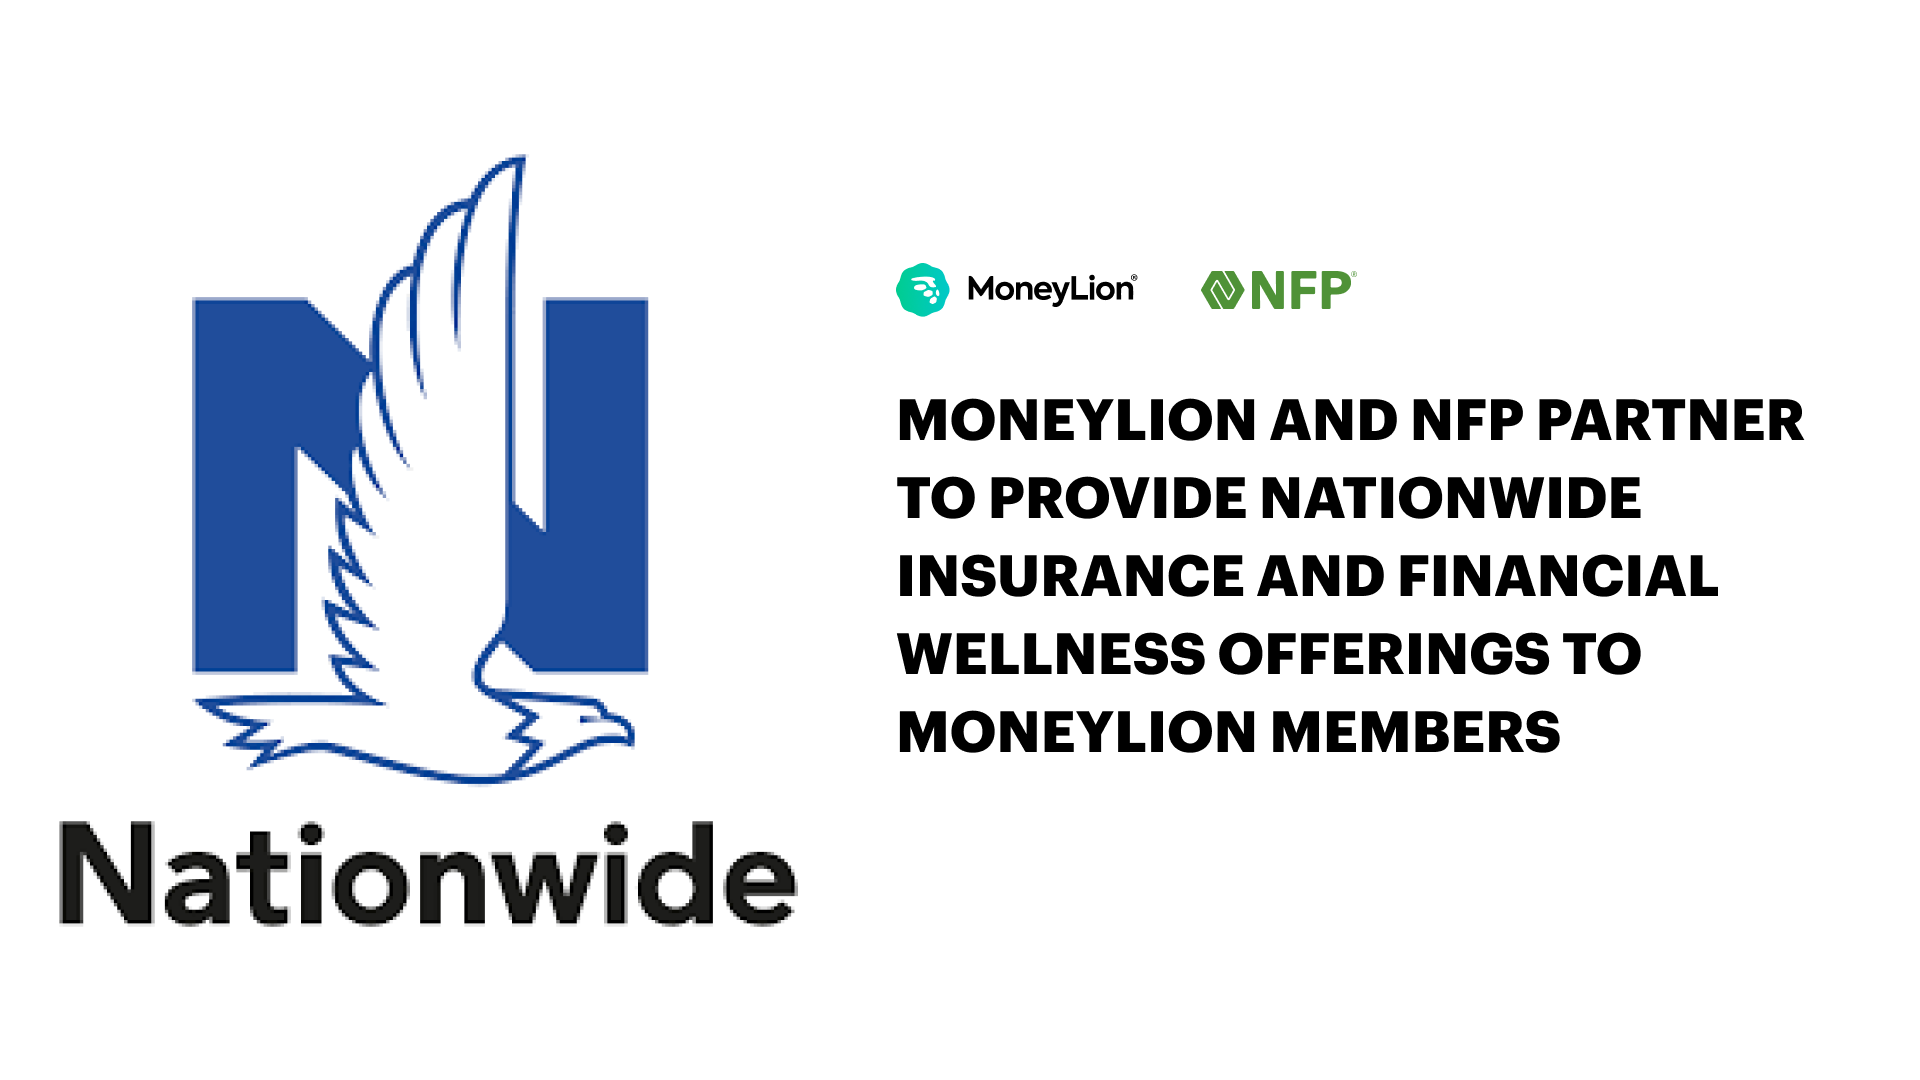 Nationwide partnership